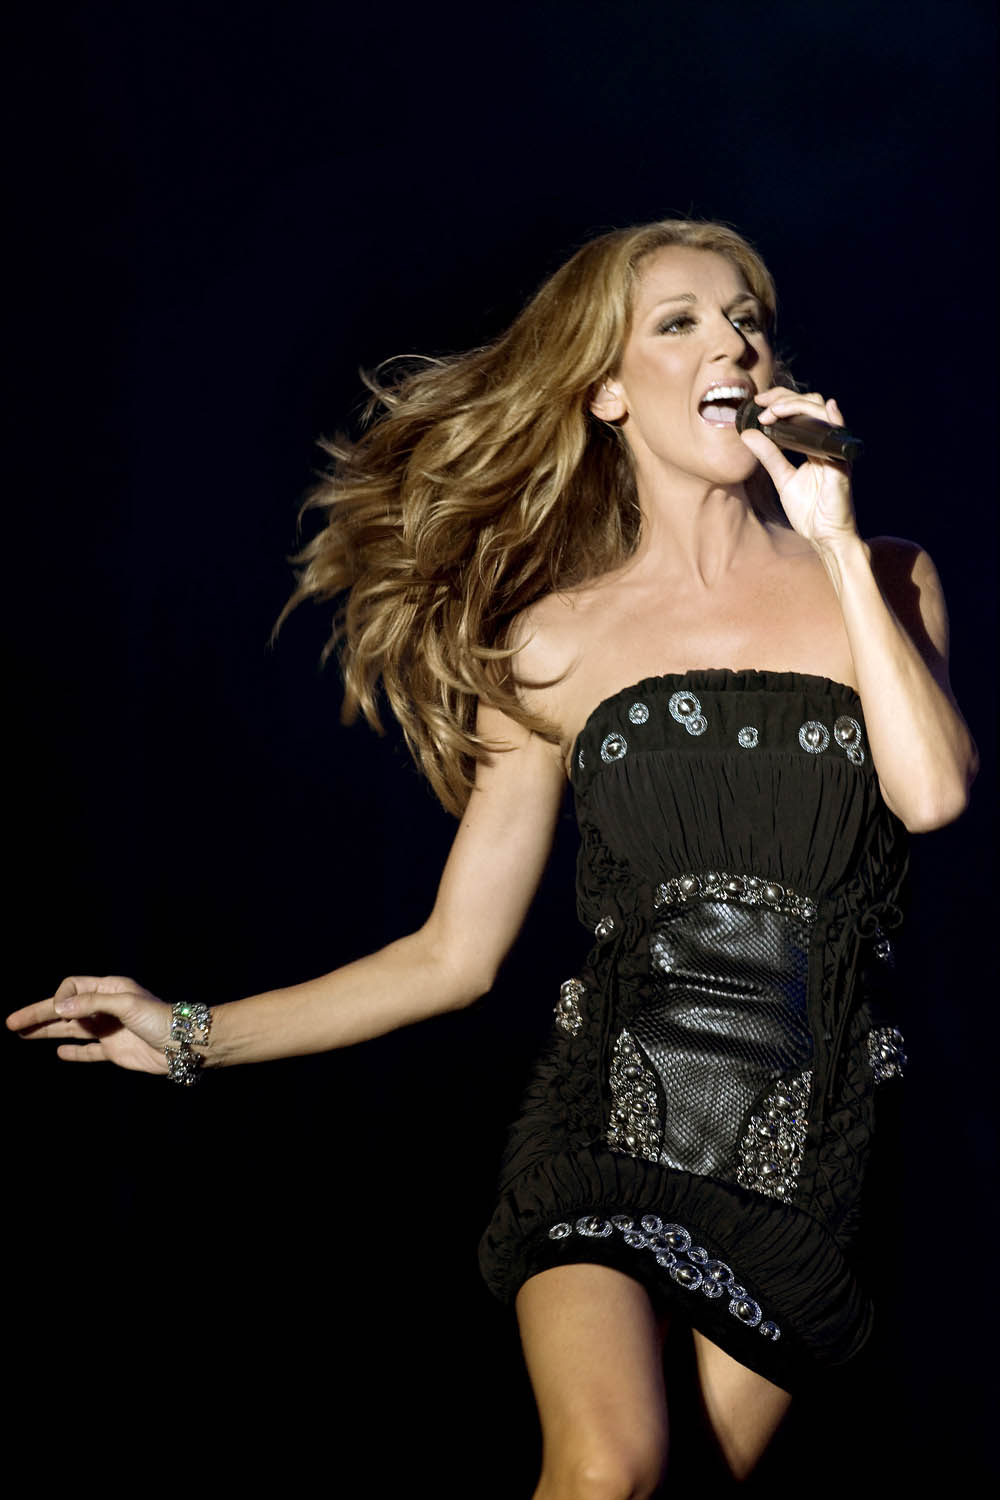 photo Céline Dion telechargement gratuit